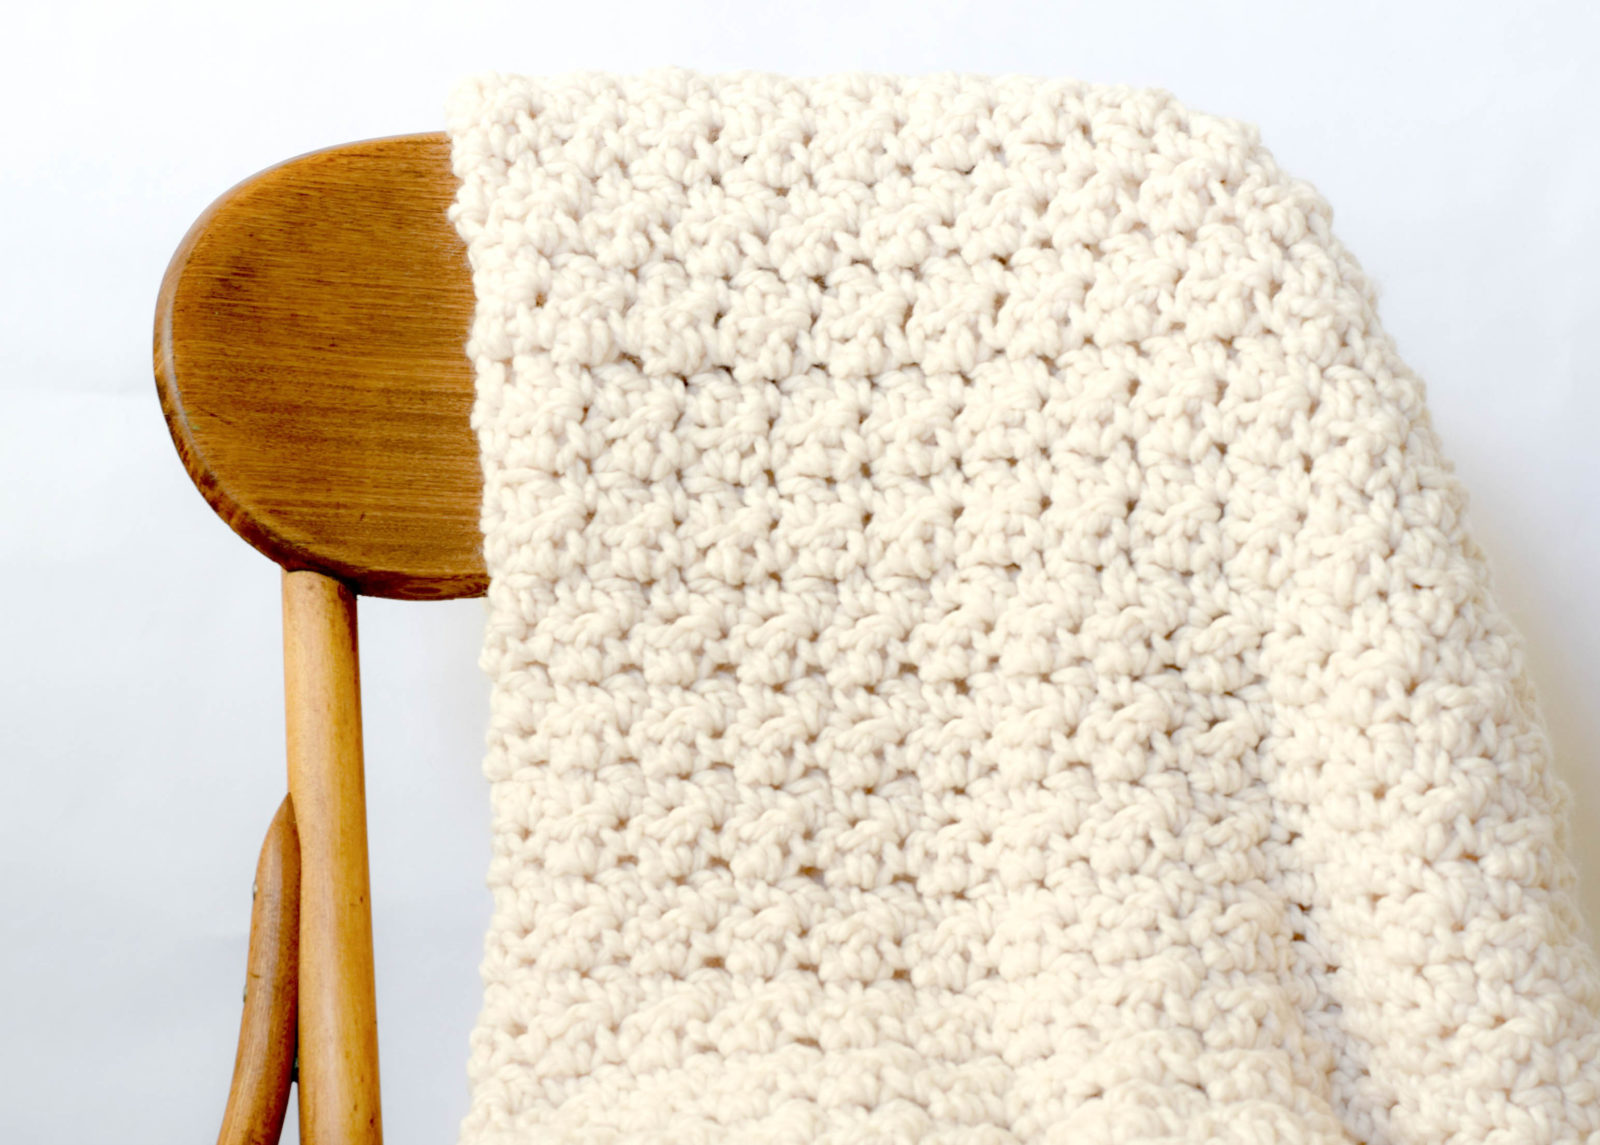 Crochet Stitches For Chunky Yarn : Chunky Icelandic Crochet Blanket Pattern - Mama In A Stitch